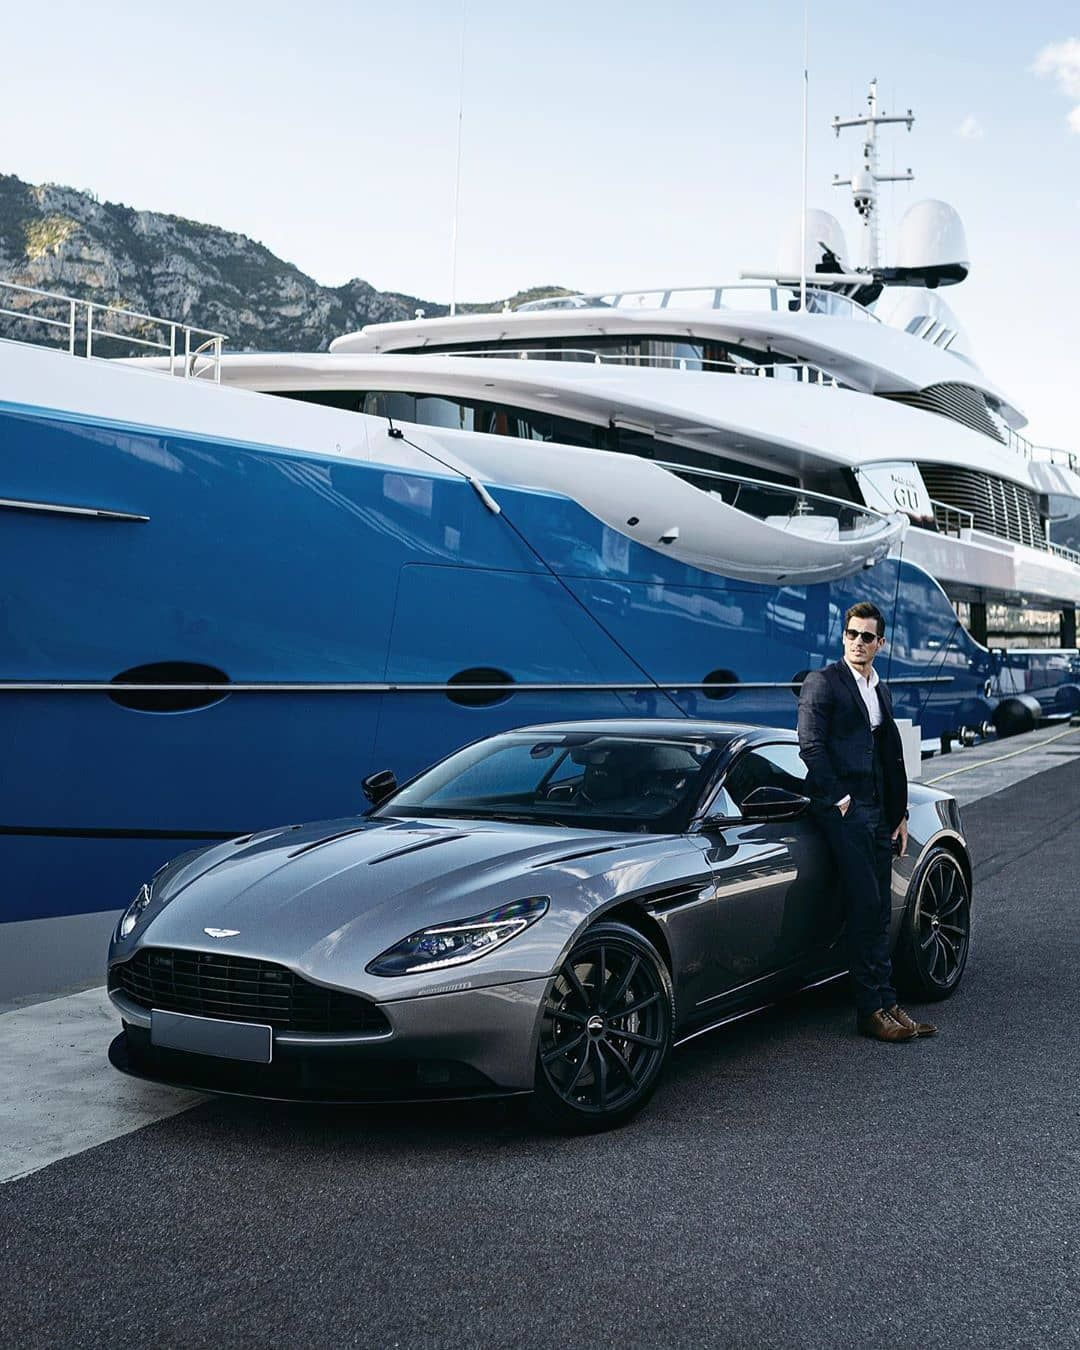 Pin By Cici Mici On Luxury Cars In 2020 (With Images